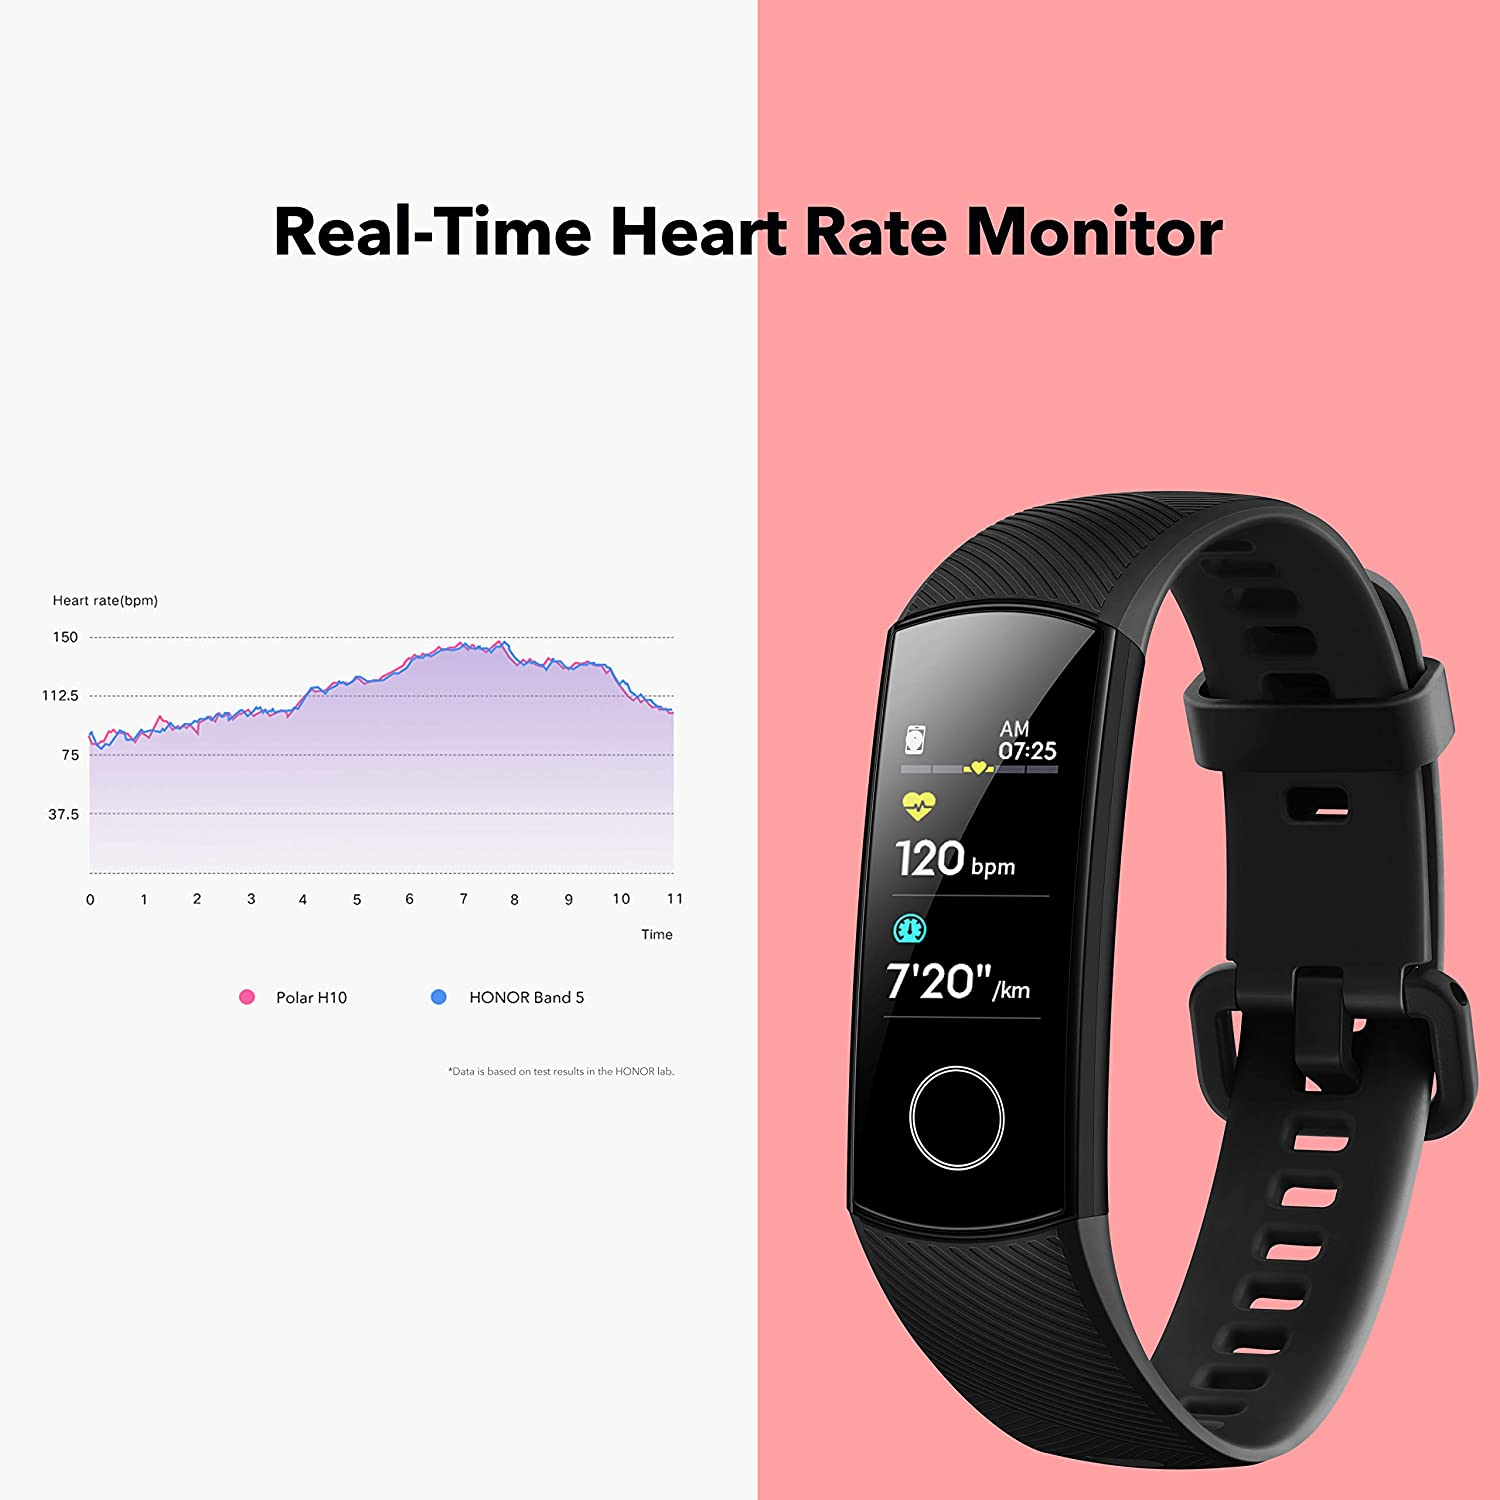 Honor Band 5: Activity Tracking And Heart Rate Monitoring